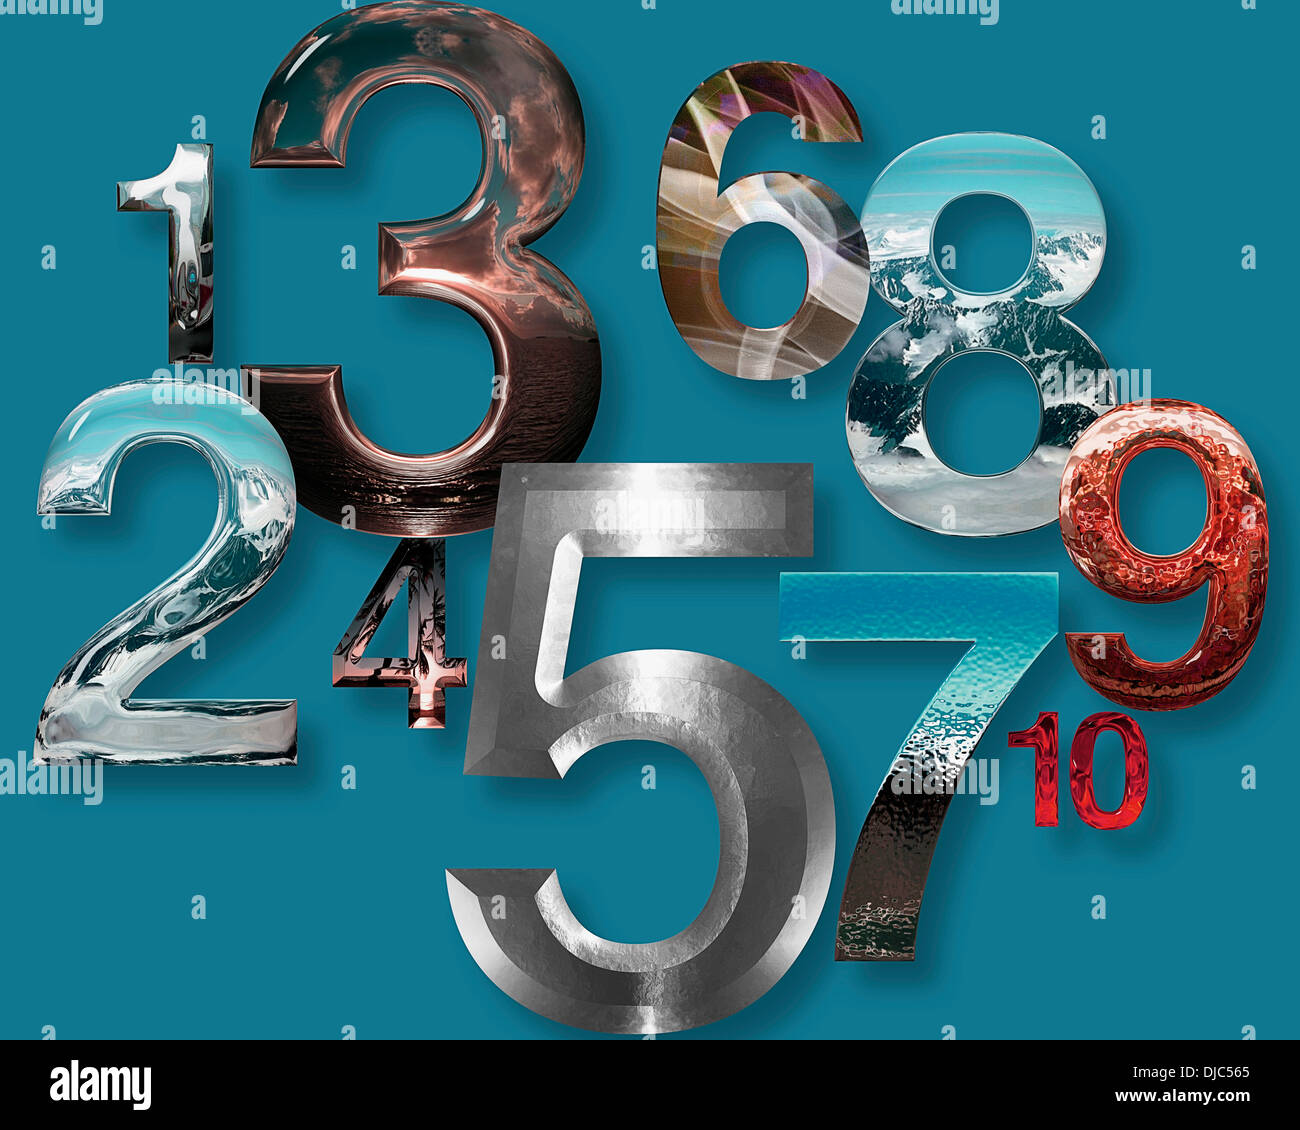 Graphic design: Numb3rs Immagini Stock